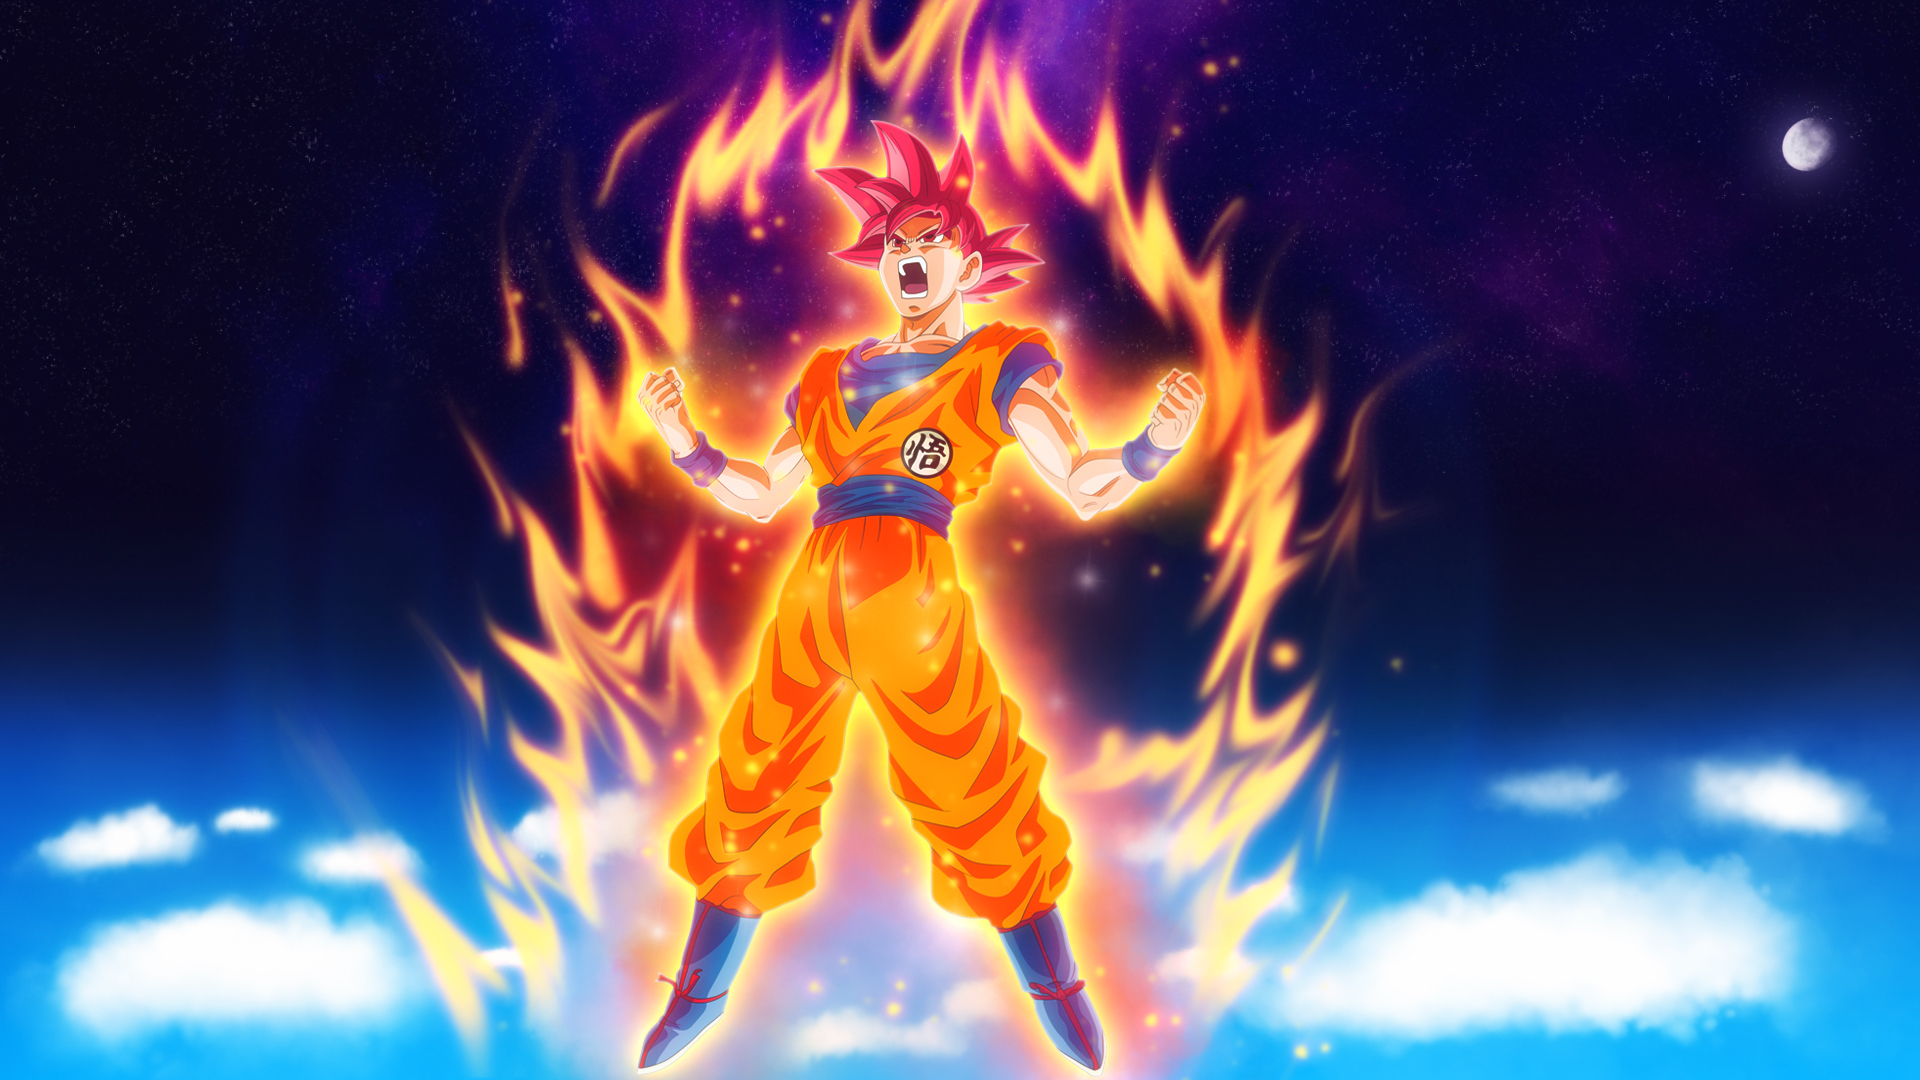 goku dragon ball super anime hd, hd anime, 4k wallpapers, images